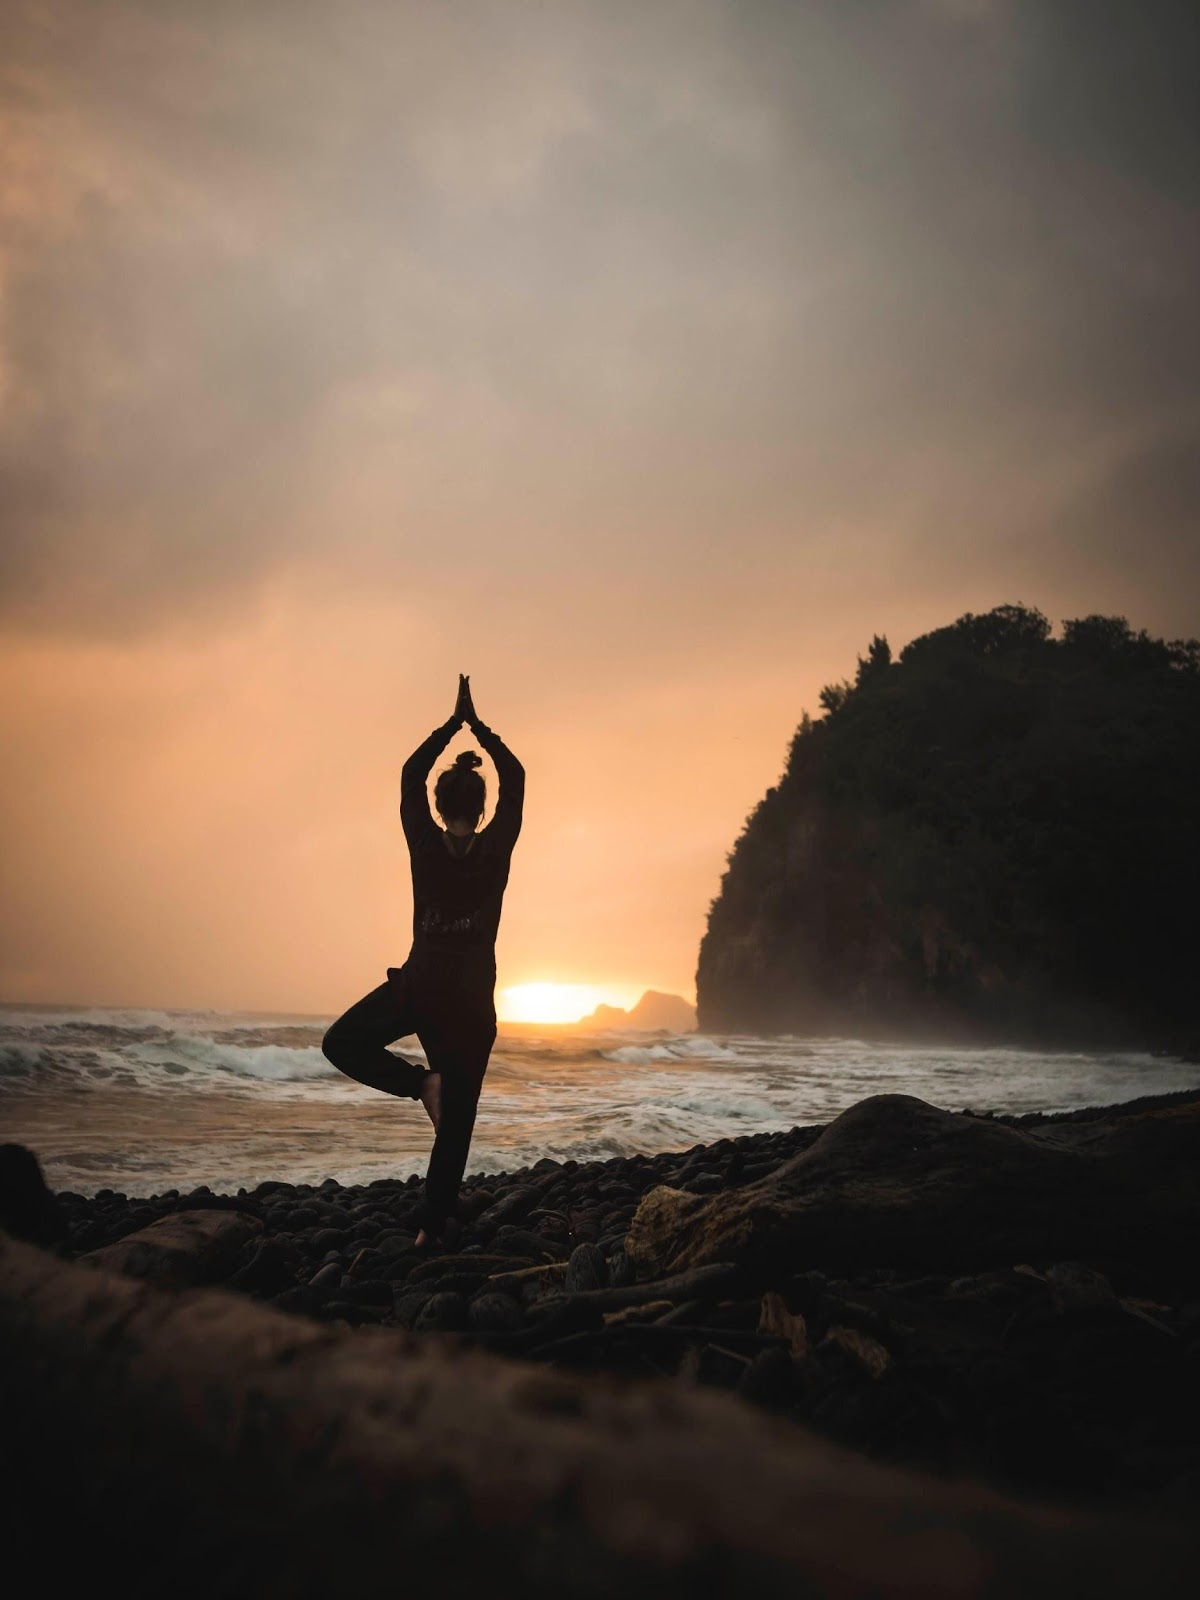 Cannabis and Yoga are Stress Relievers